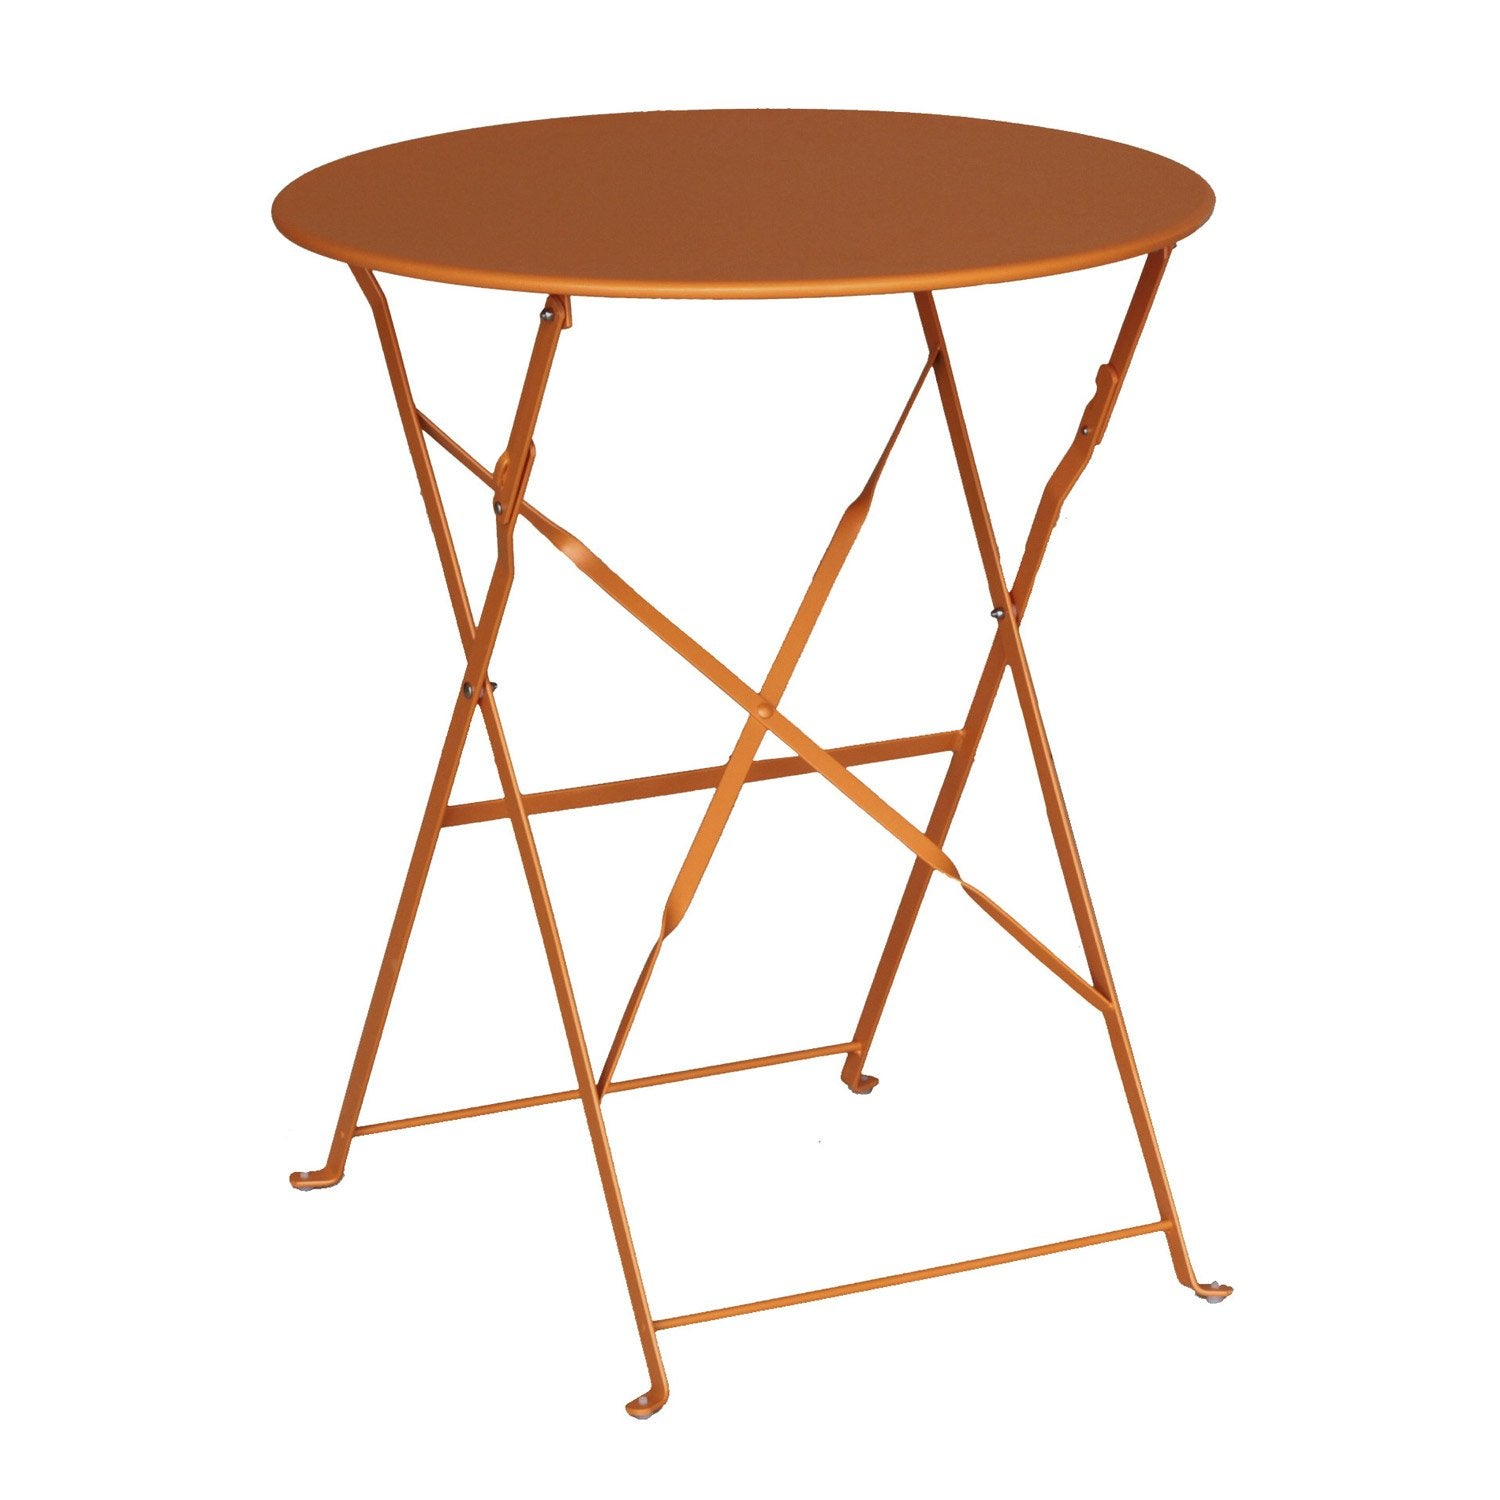 Table de jardin NATERIAL Flore ronde orange 2 personnes | Leroy Merlin